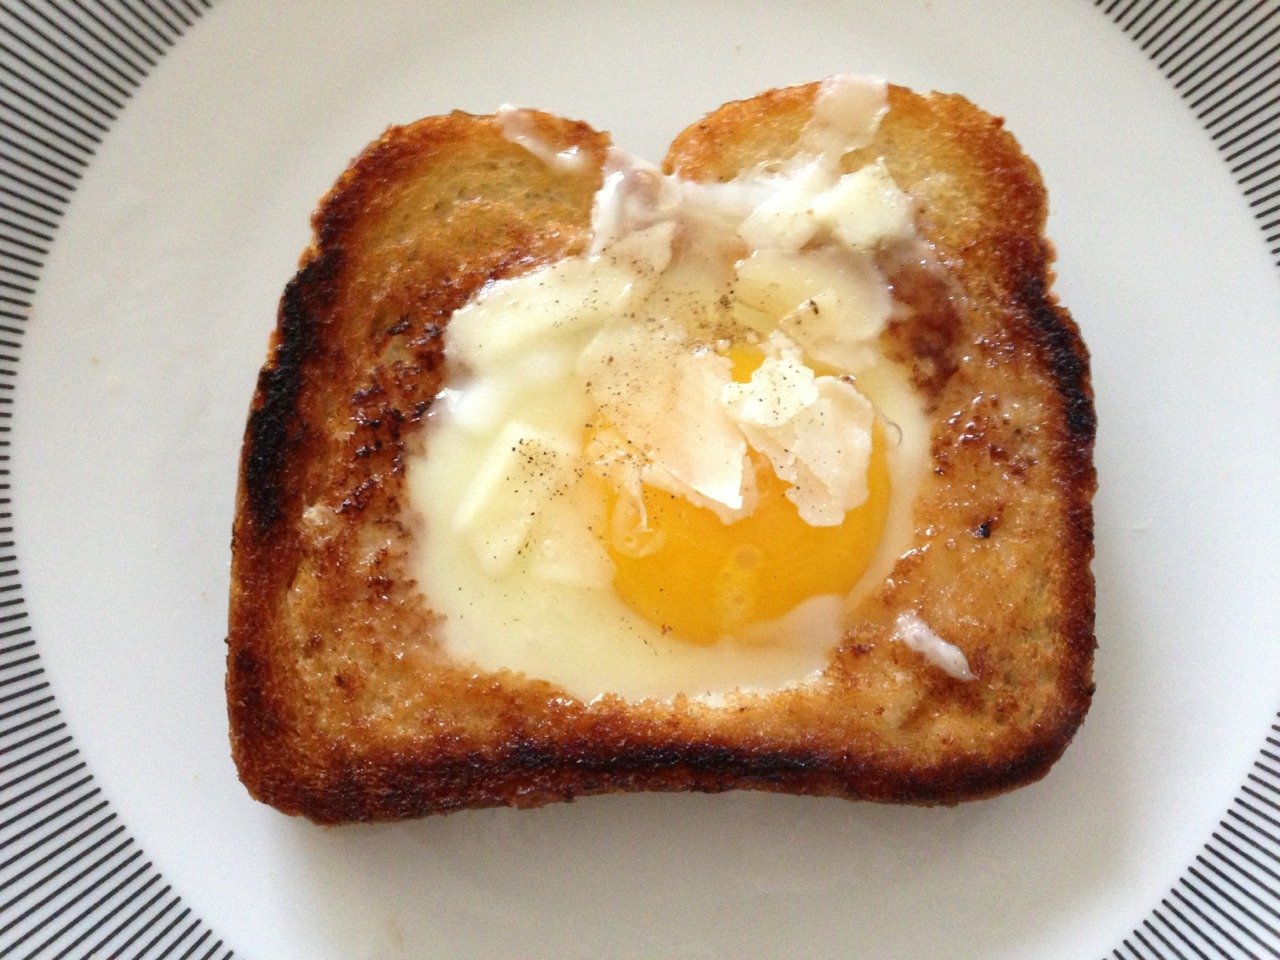 Toad in the hole (egg in the basket) with a sprinkling of grated pecorino romano, courtesy of moi! It was quite tasty, if I may say so myself. -Gastrodamus